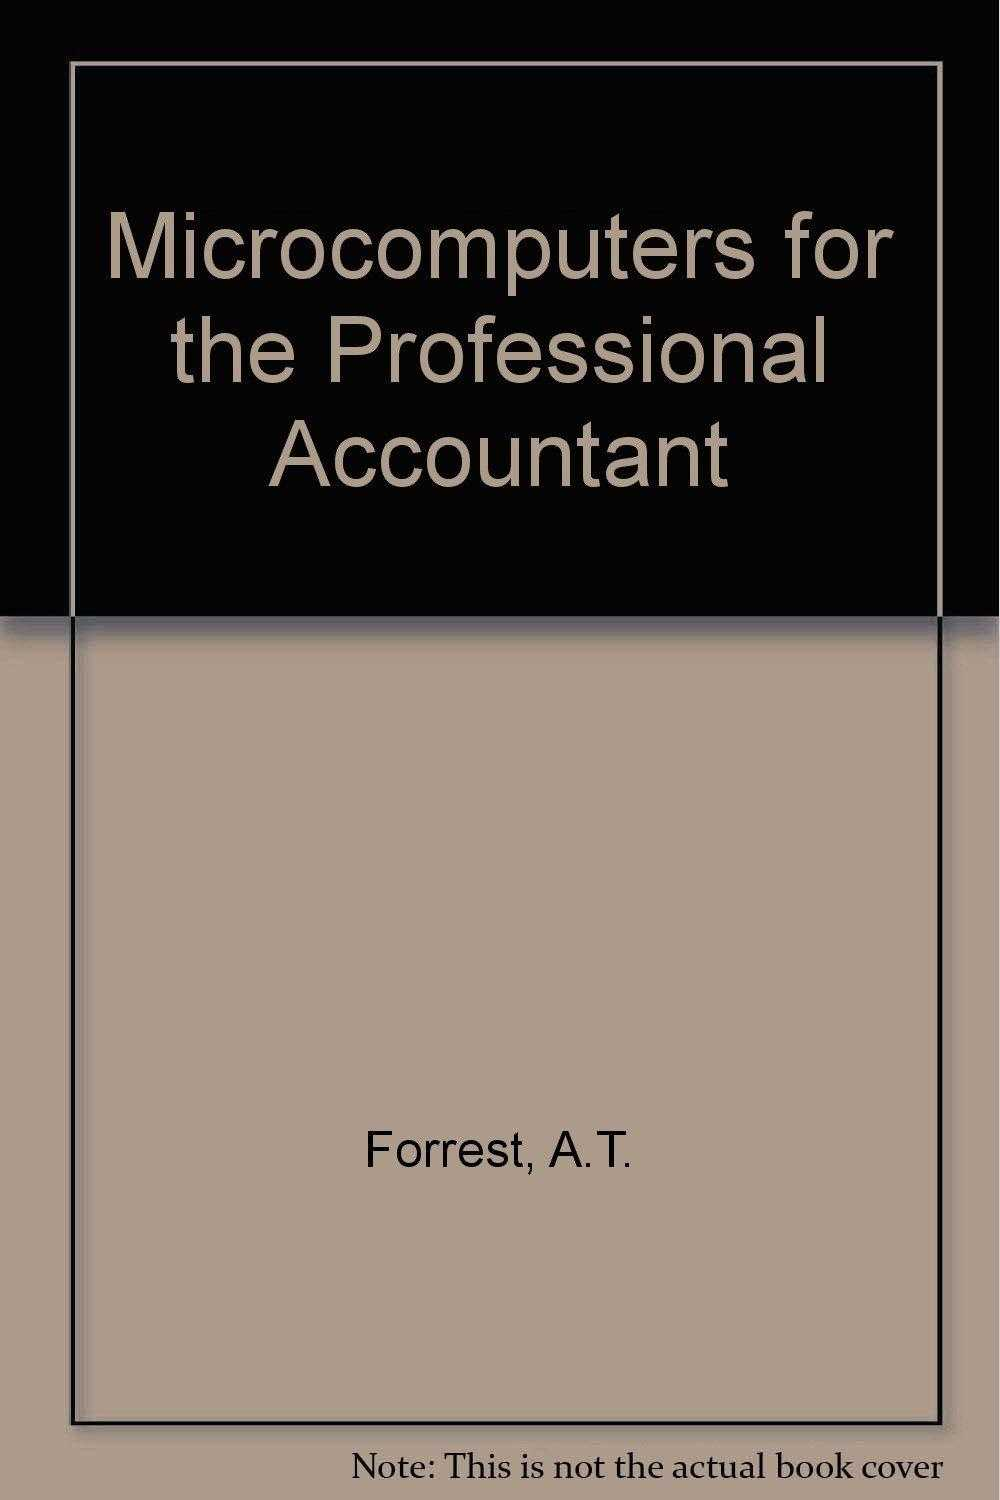 Microcomputers for the Professional Accountant, Forrest, A.T.